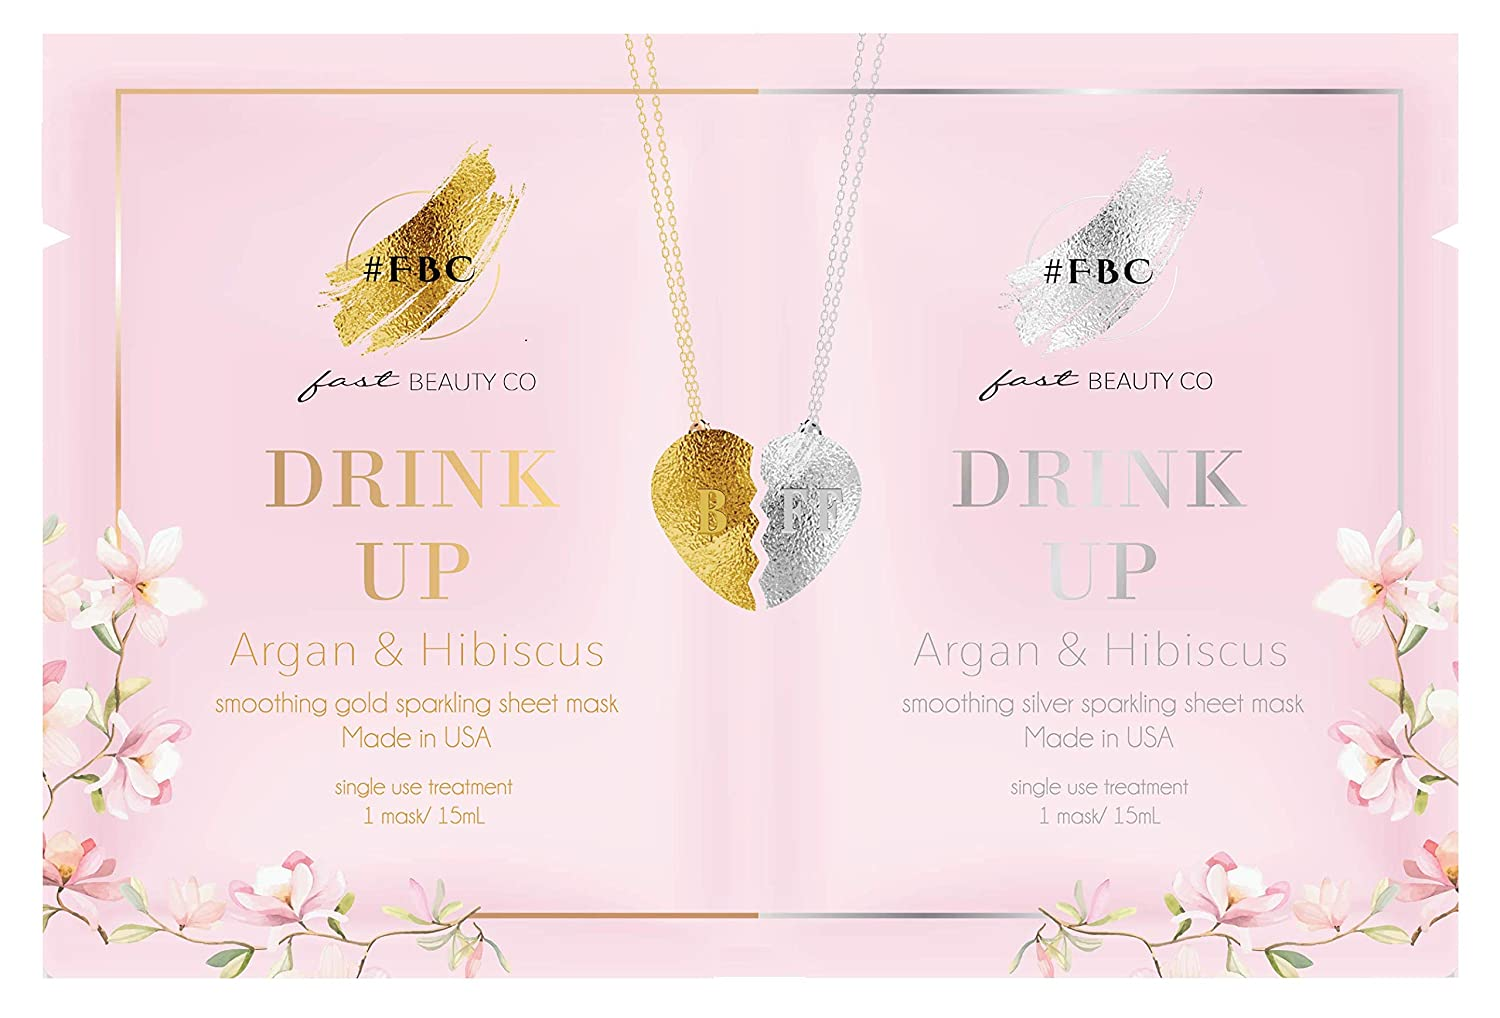 Fast Beauty Co. BFF Drink Up! Smoothing Face Masks With Argan & Hibiscus, 2 units